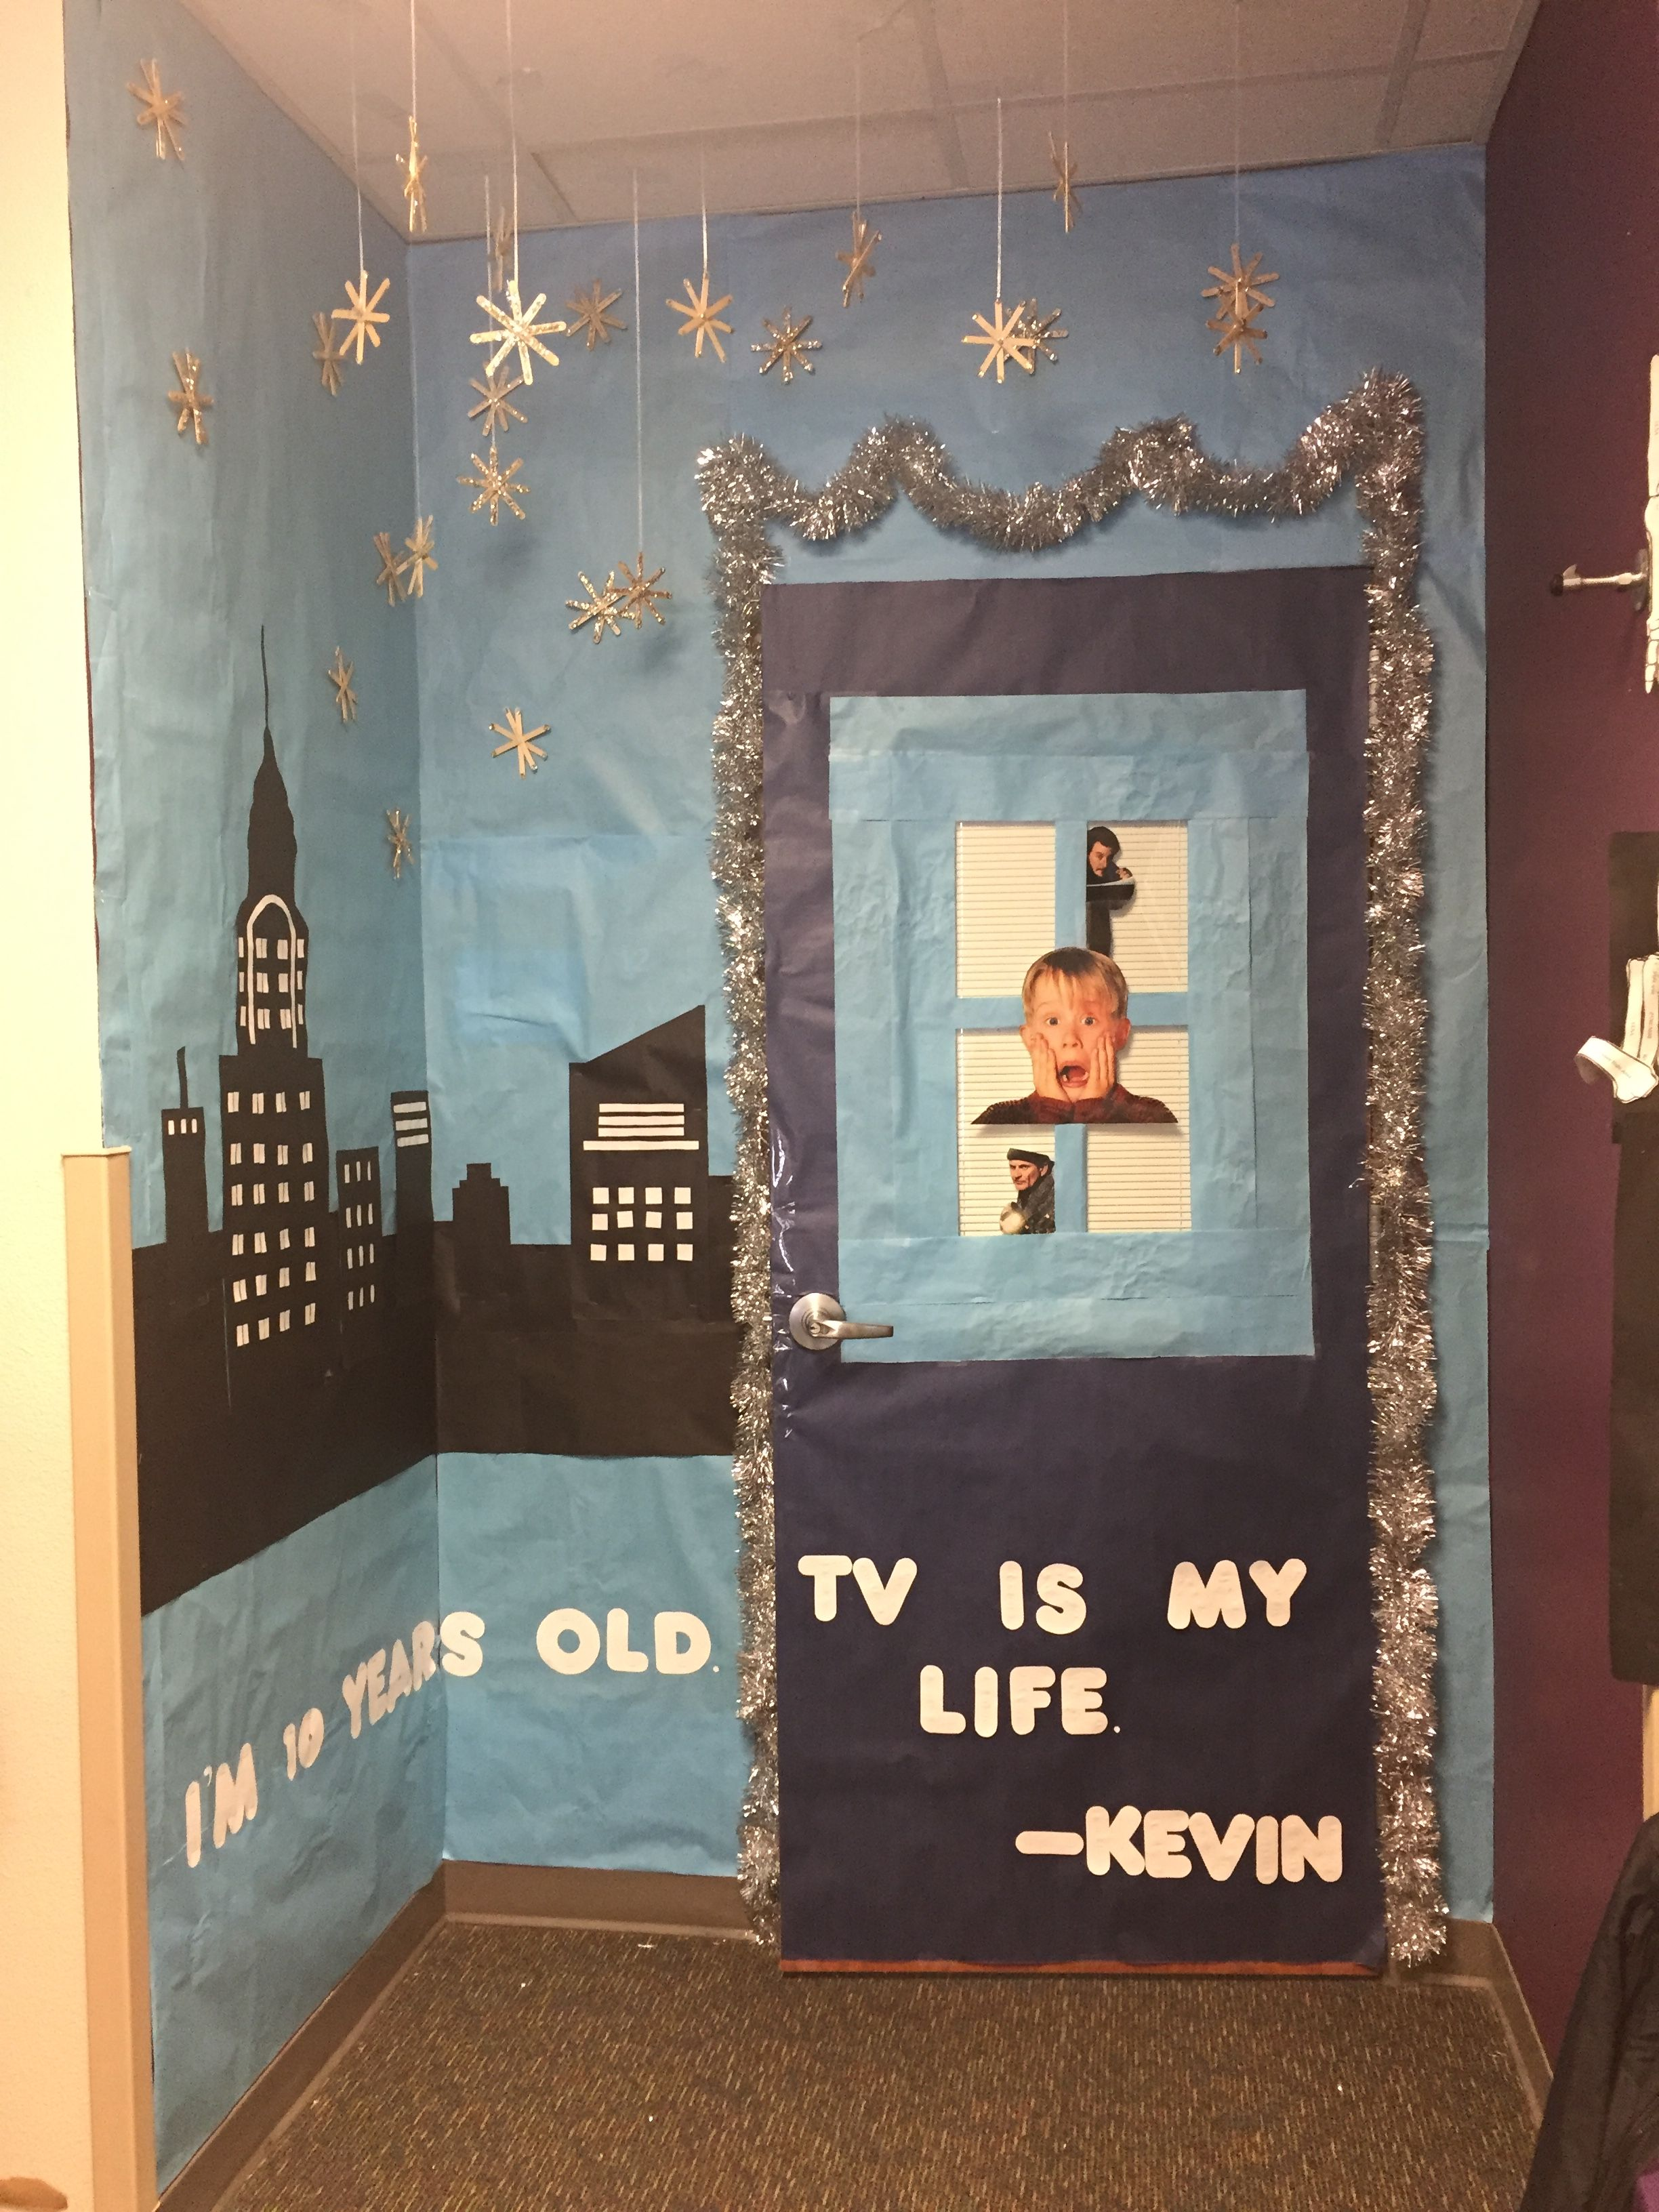 Aden S 3rd Grade Door Decoration I Made Christmas Movie Theme And